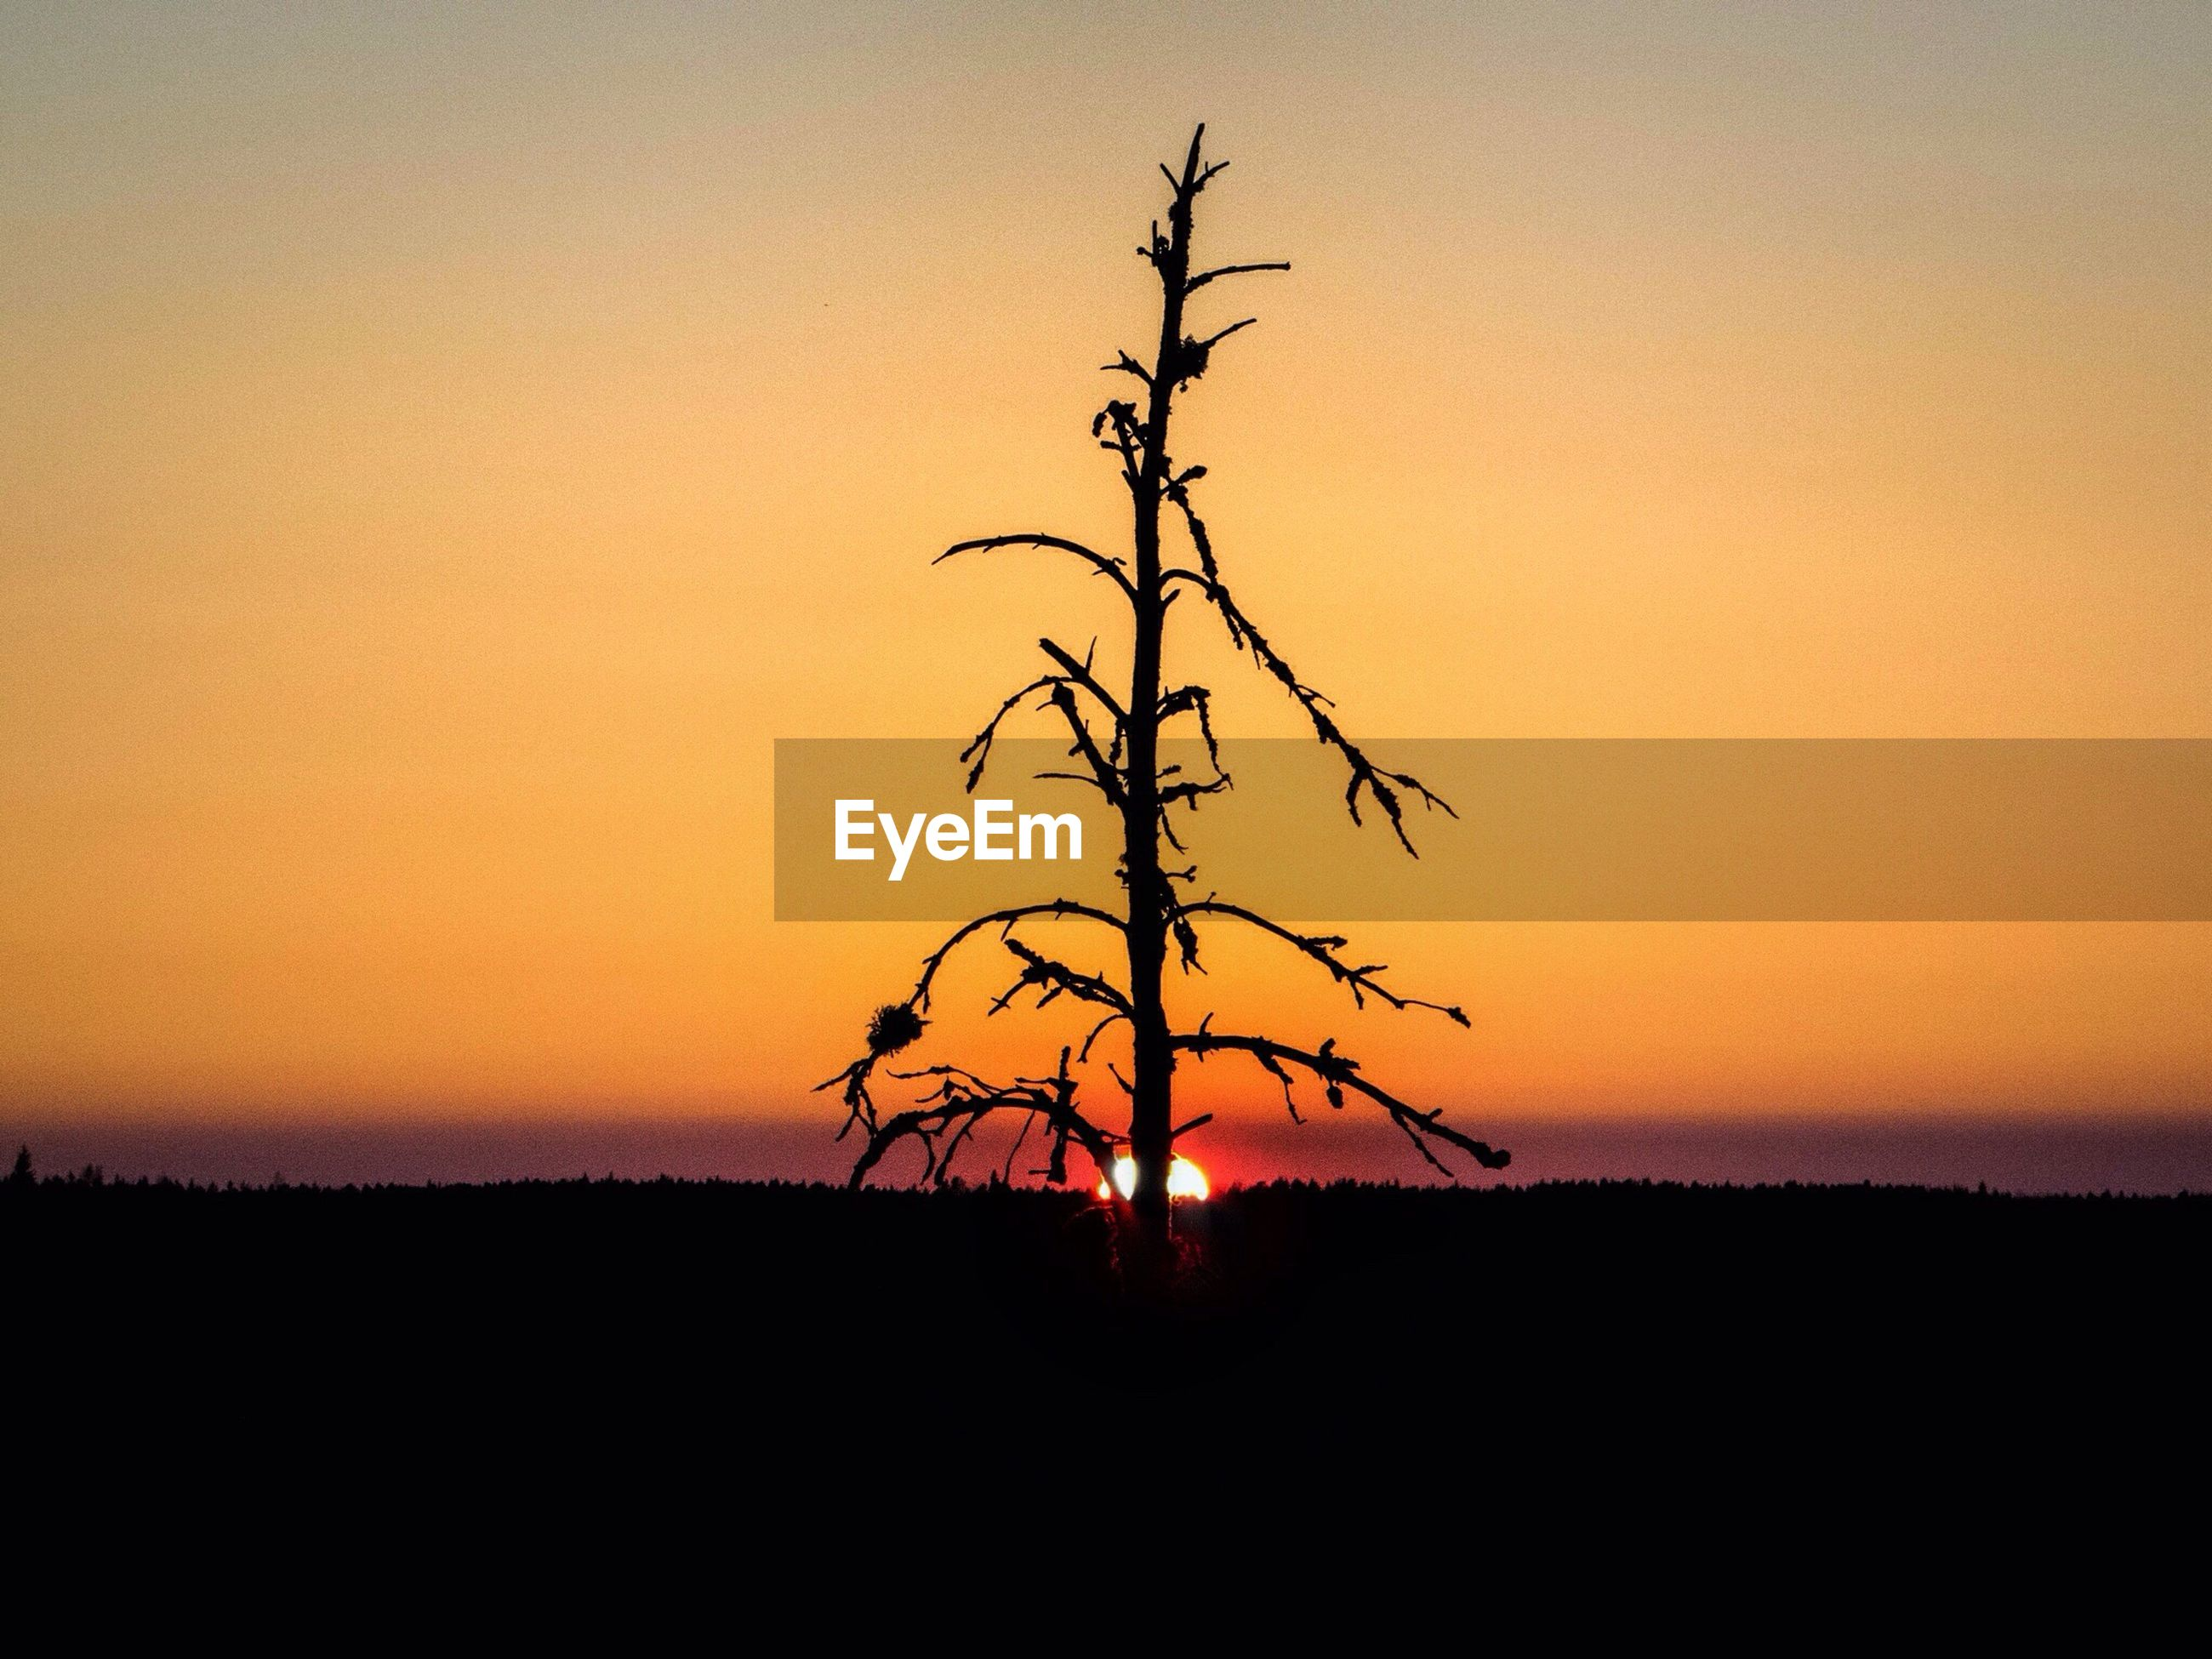 sunset, silhouette, tranquil scene, tranquility, scenics, beauty in nature, orange color, clear sky, bare tree, landscape, nature, copy space, idyllic, sun, branch, tree, horizon over land, sky, field, remote